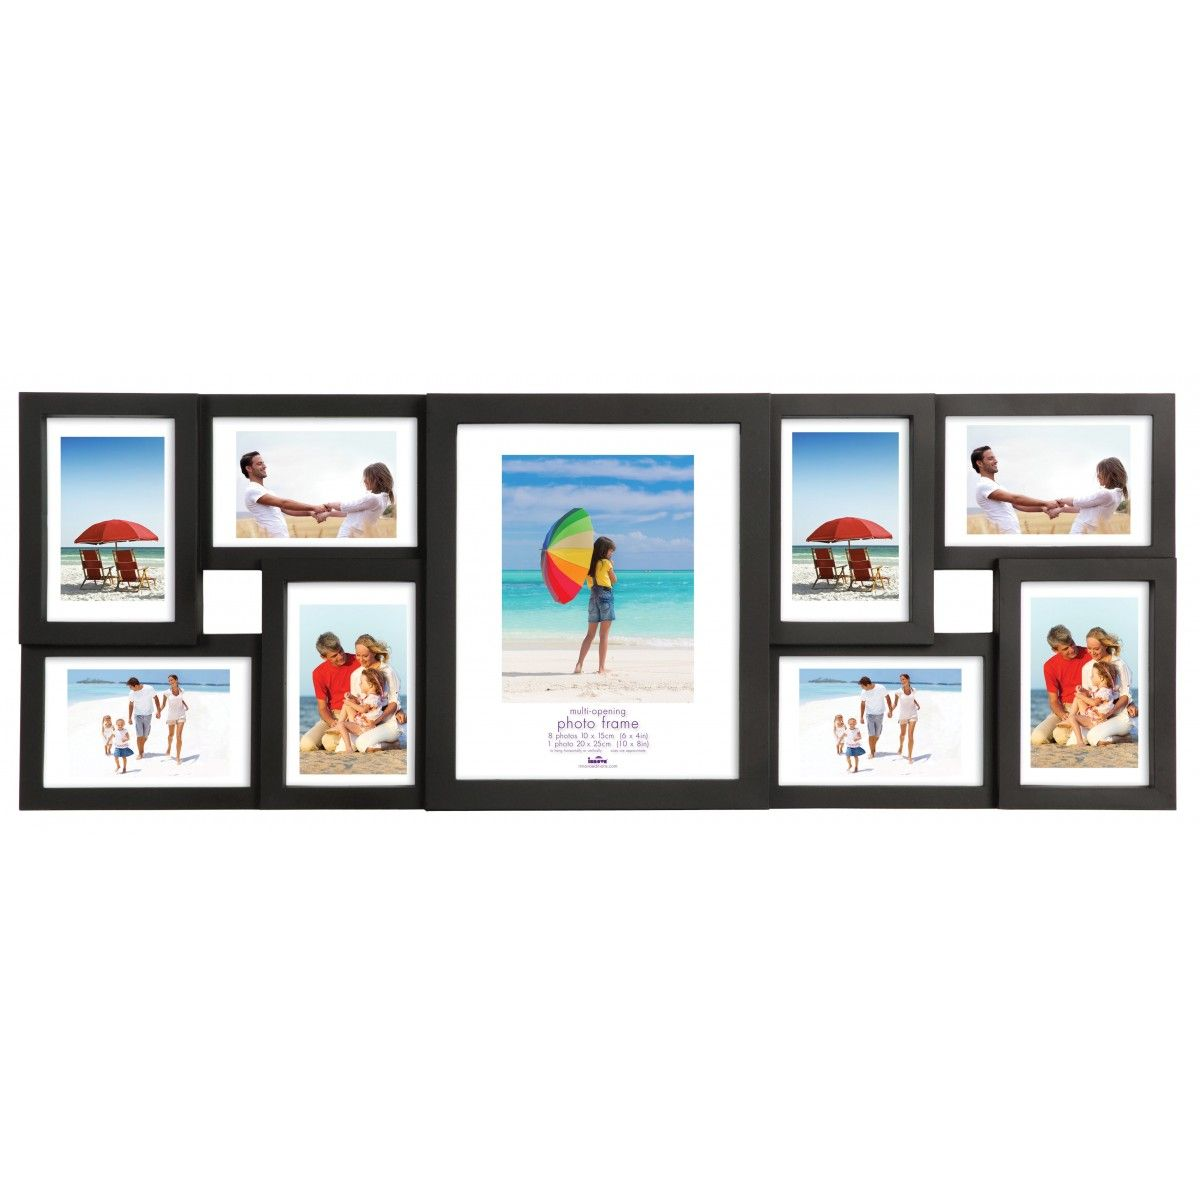 Cached Red multi aperture photo frame